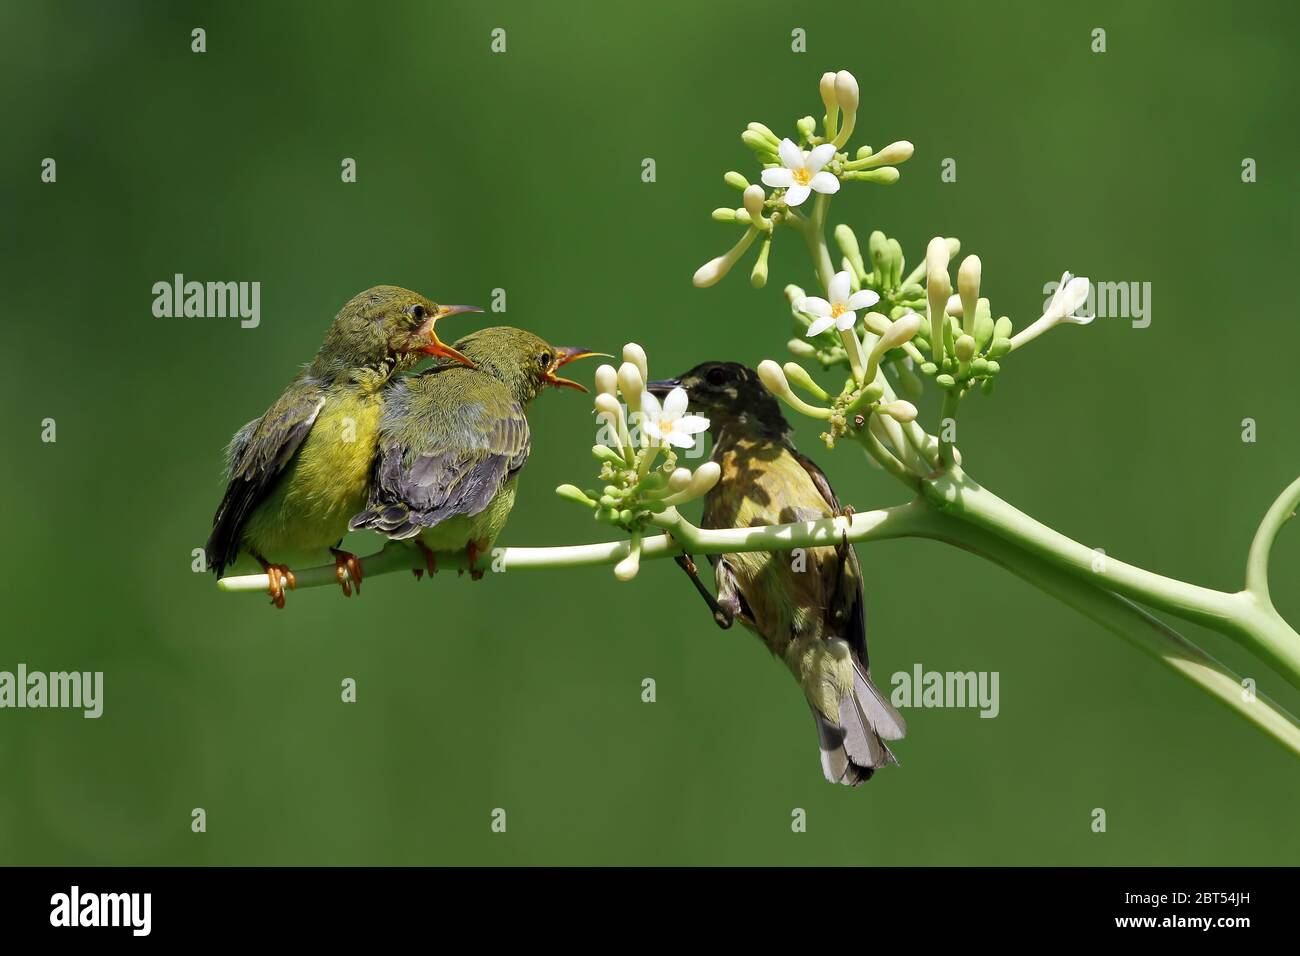 Olive-Backed Sunbird on a plant feeding her chicks, Indonesia Stock Photo